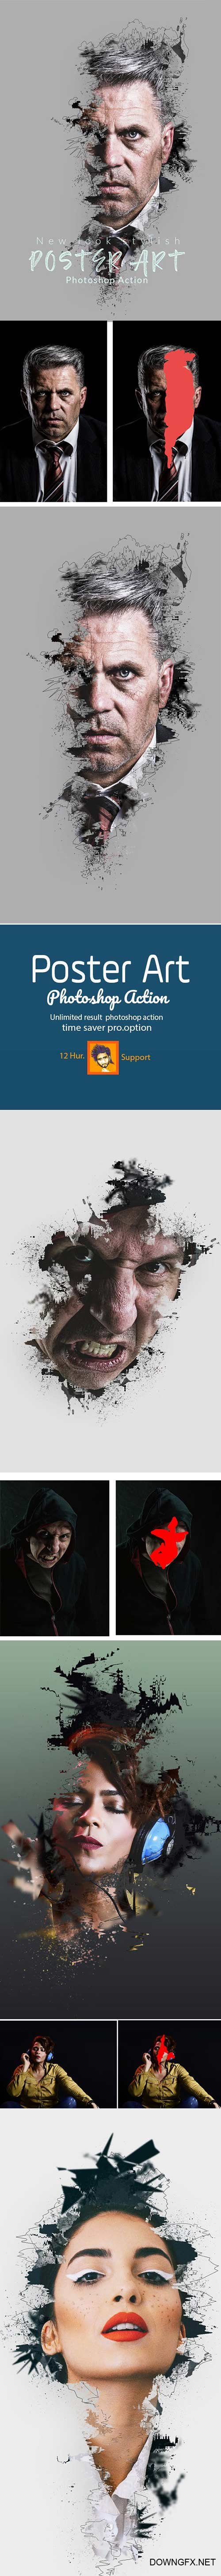 GraphicRiver - Poster Art Photoshop Action 23094765